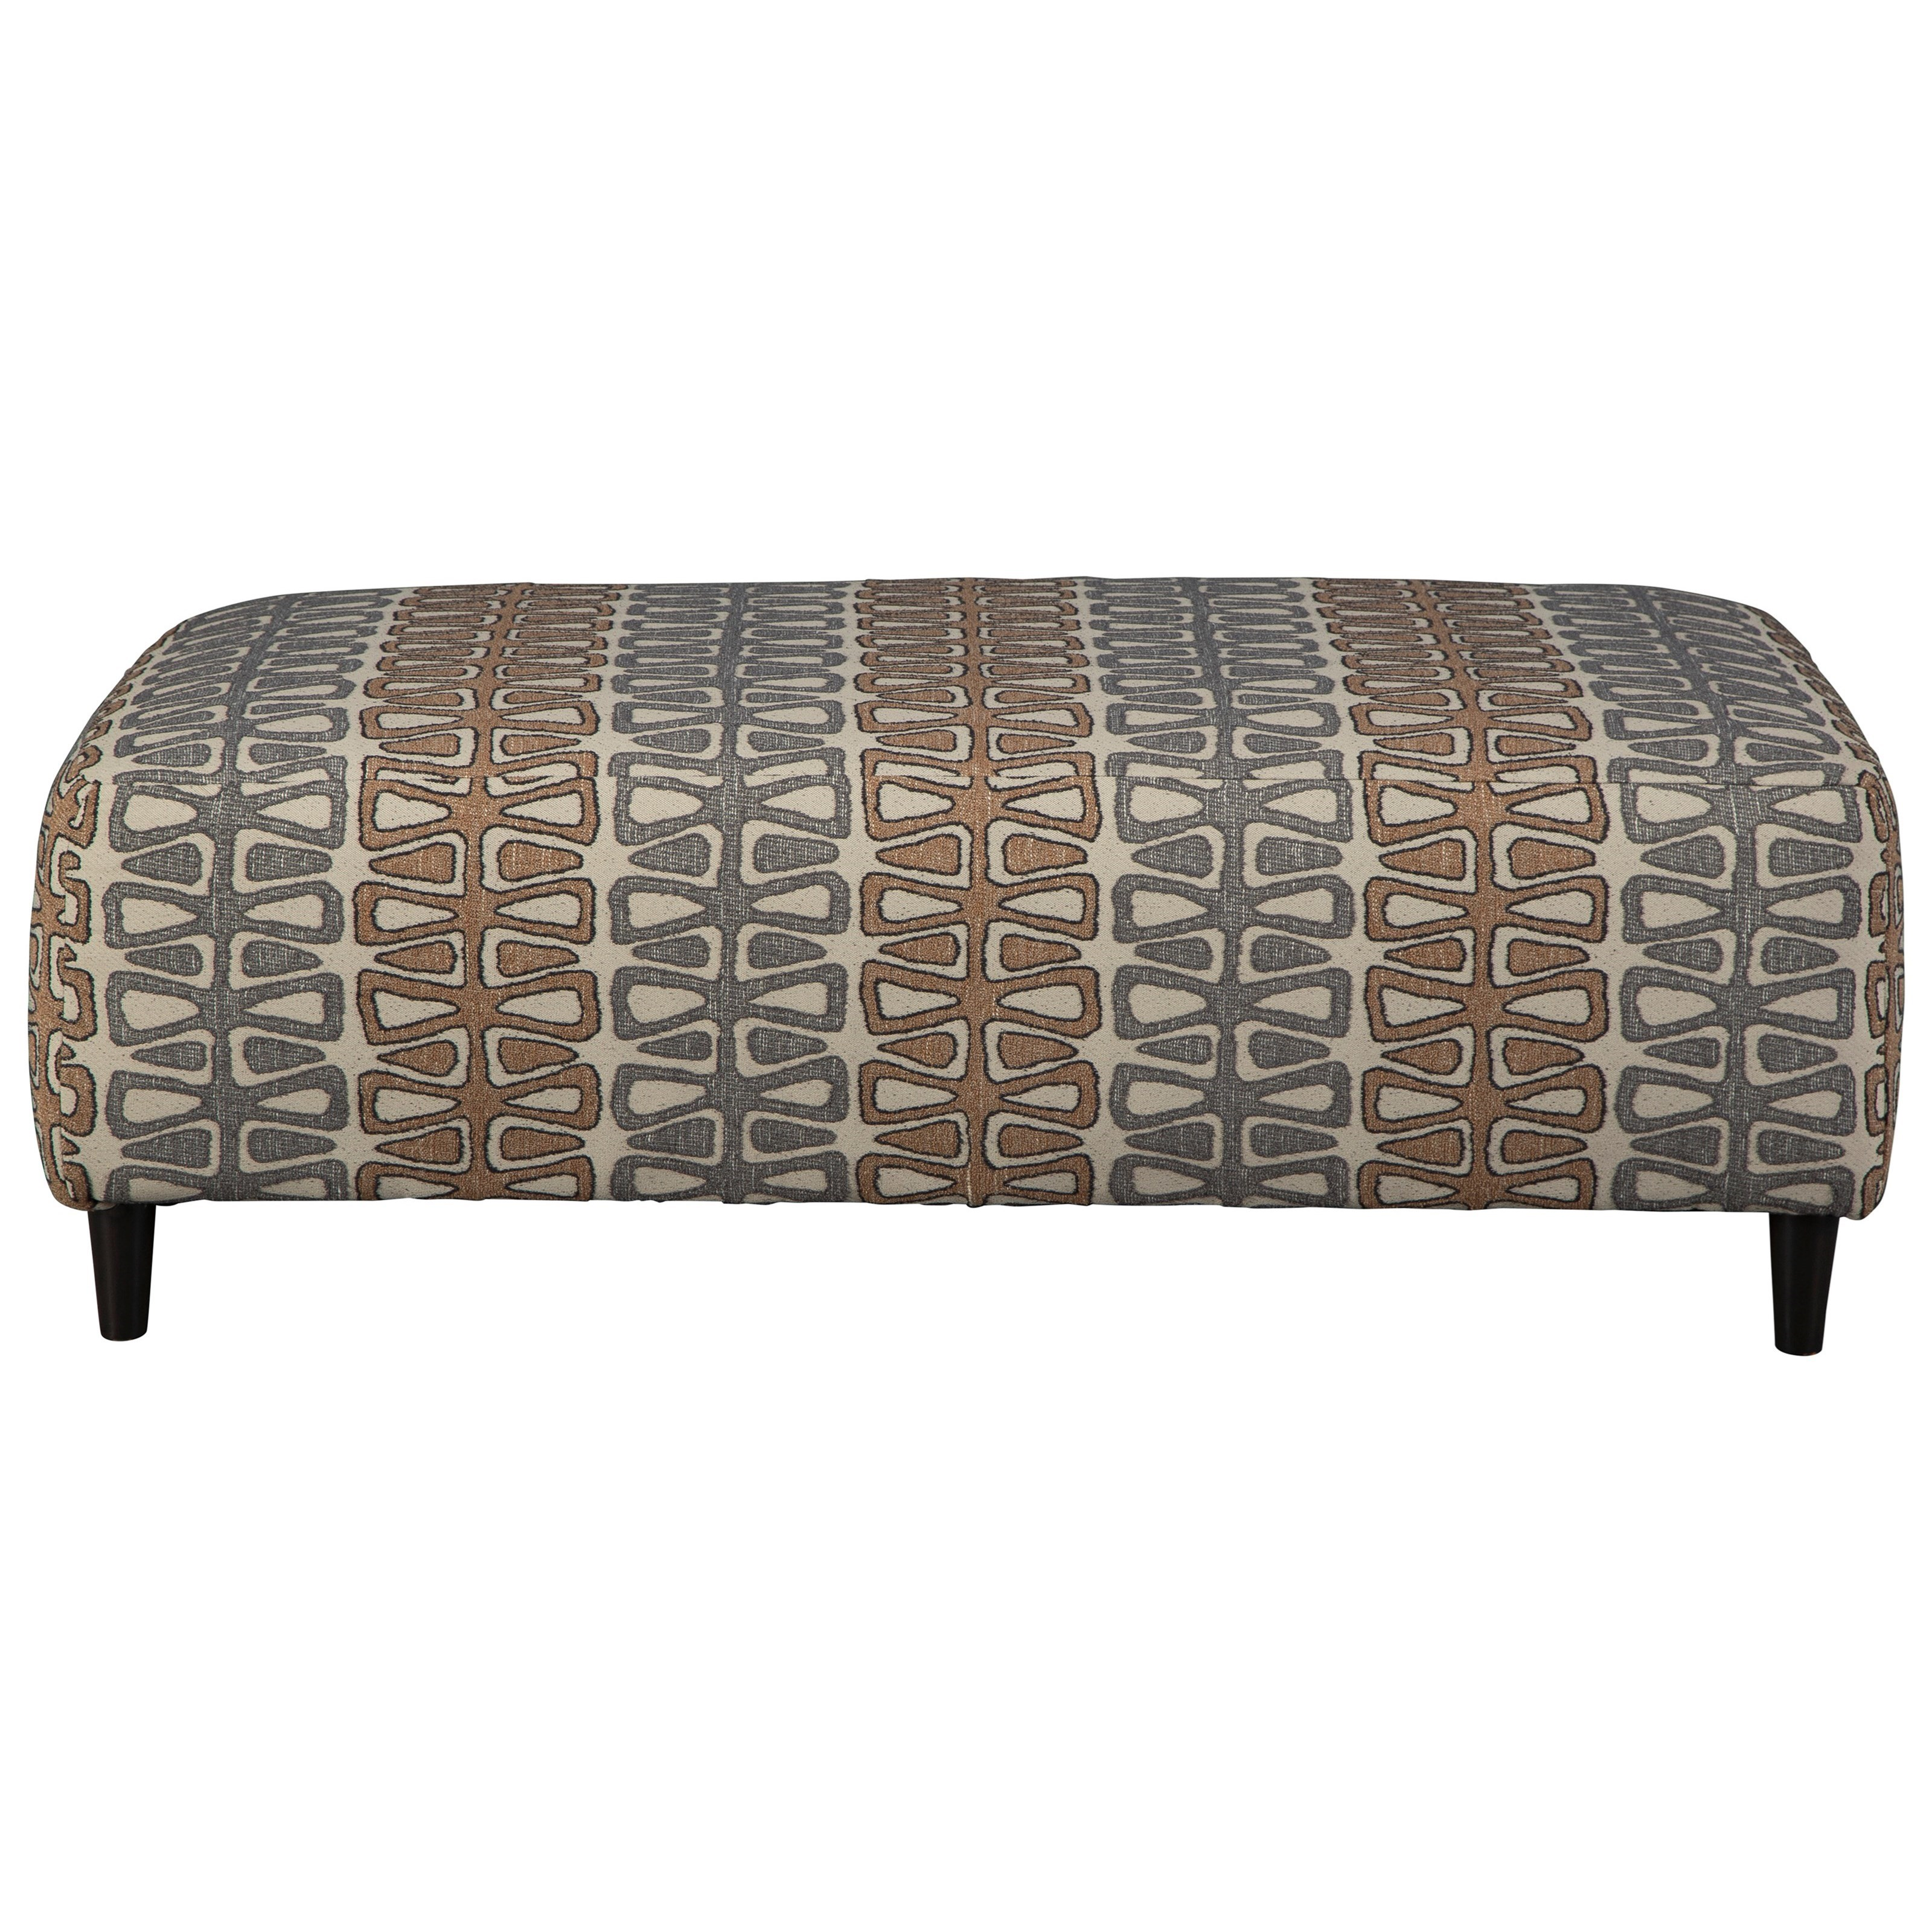 Flintshire Oversized Accent Ottoman by Signature Design by Ashley at Beck's Furniture